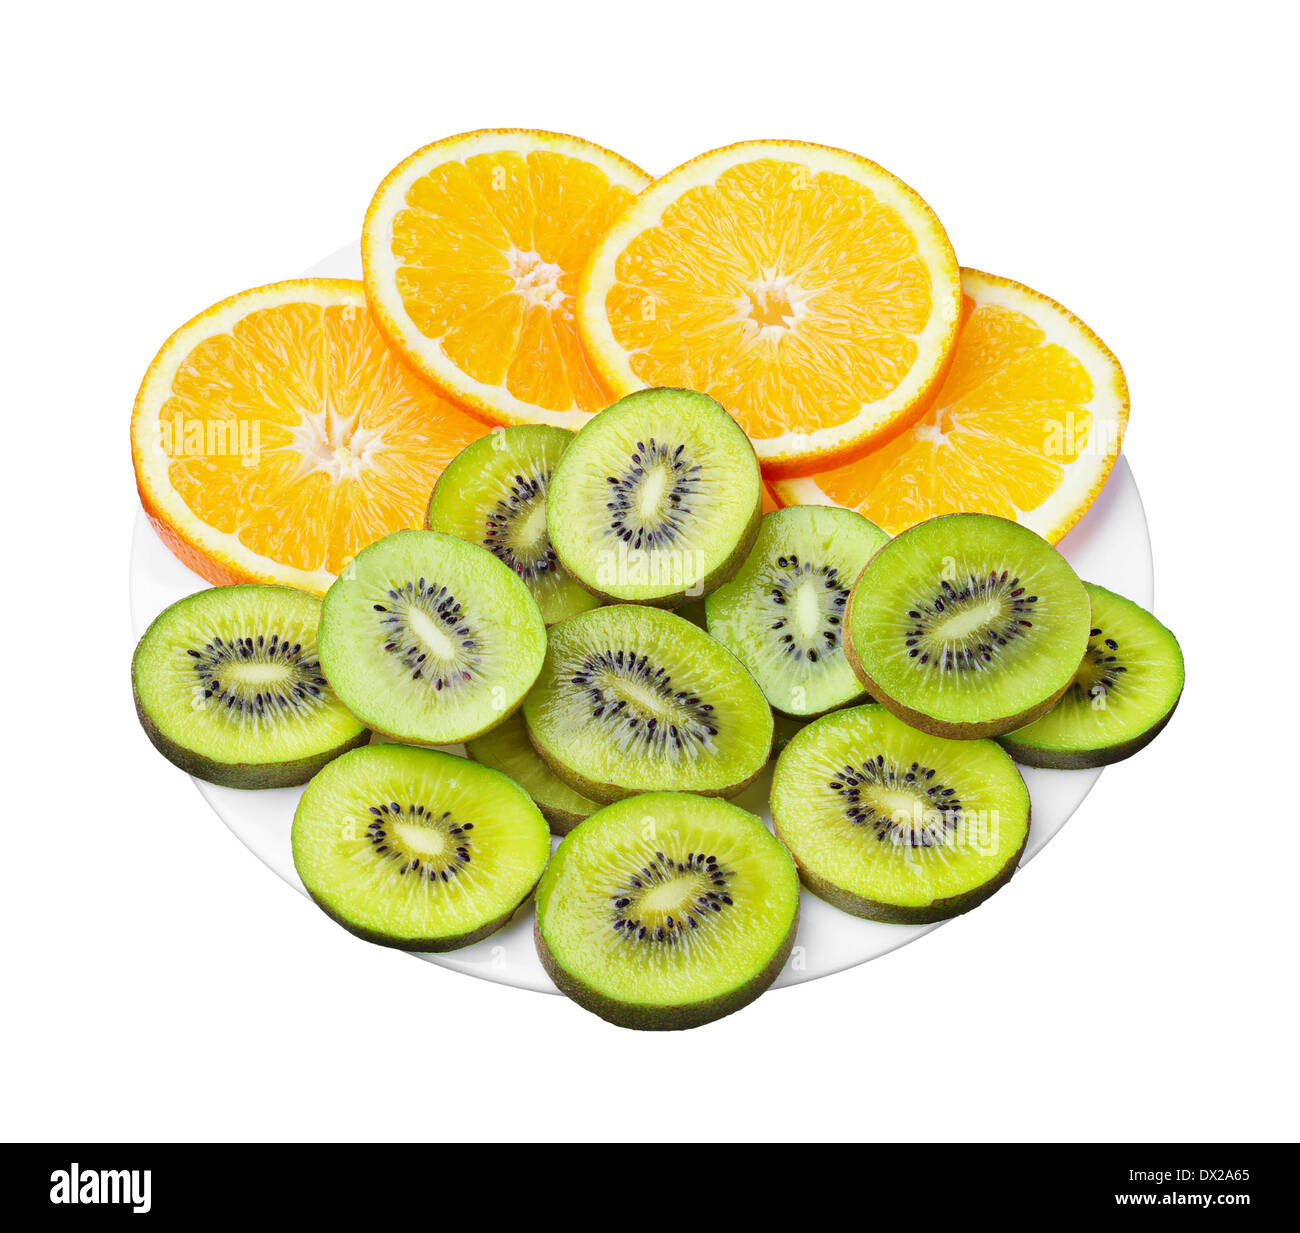 Kiwi and orange slices on a plate isolated on white - Stock Image